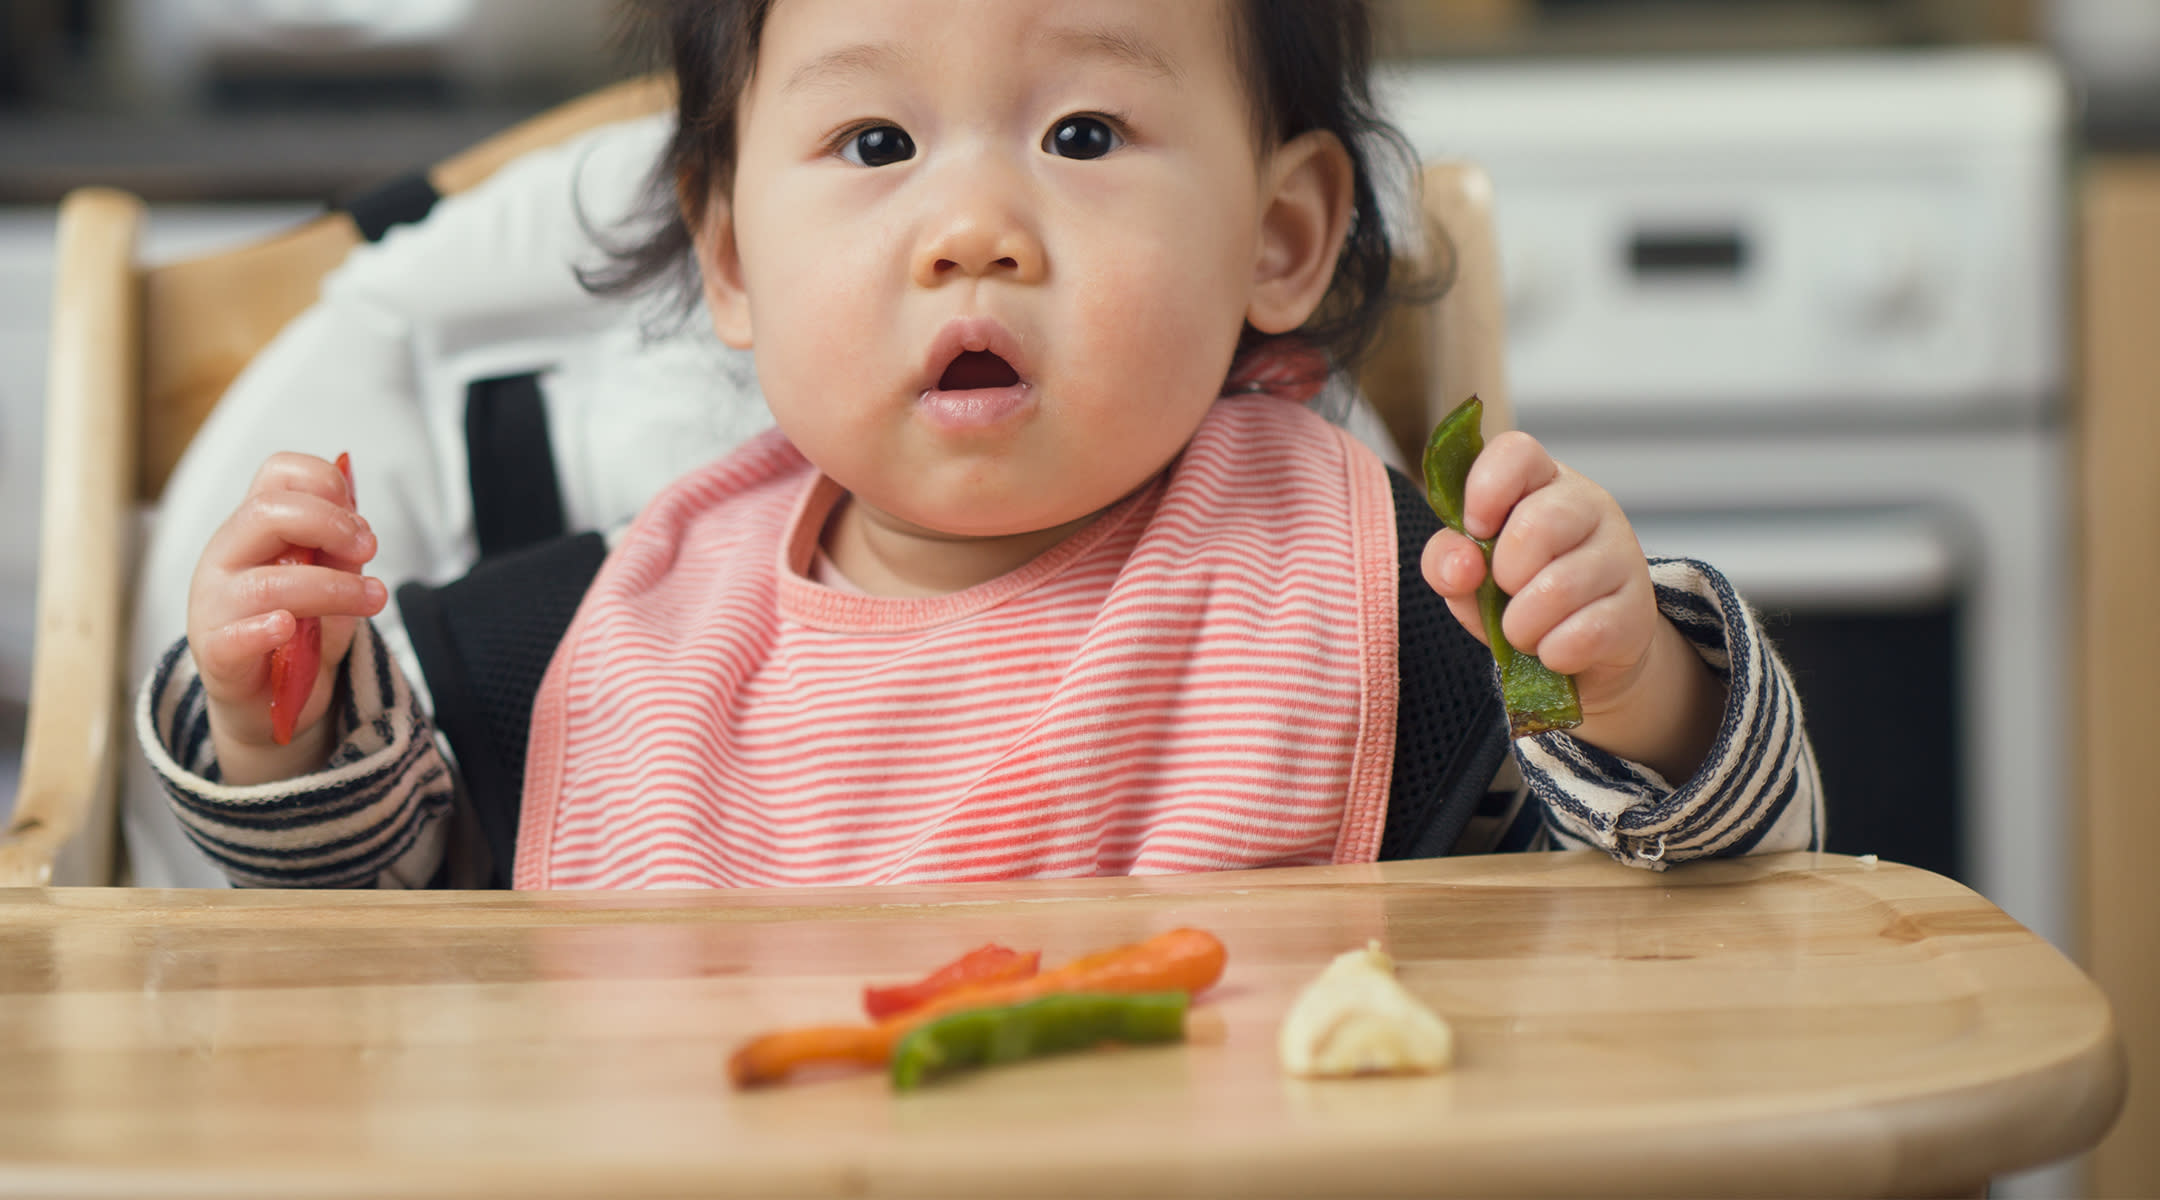 the best time to start allergy prevention for baby in utero says baby playing vegetables in high chair